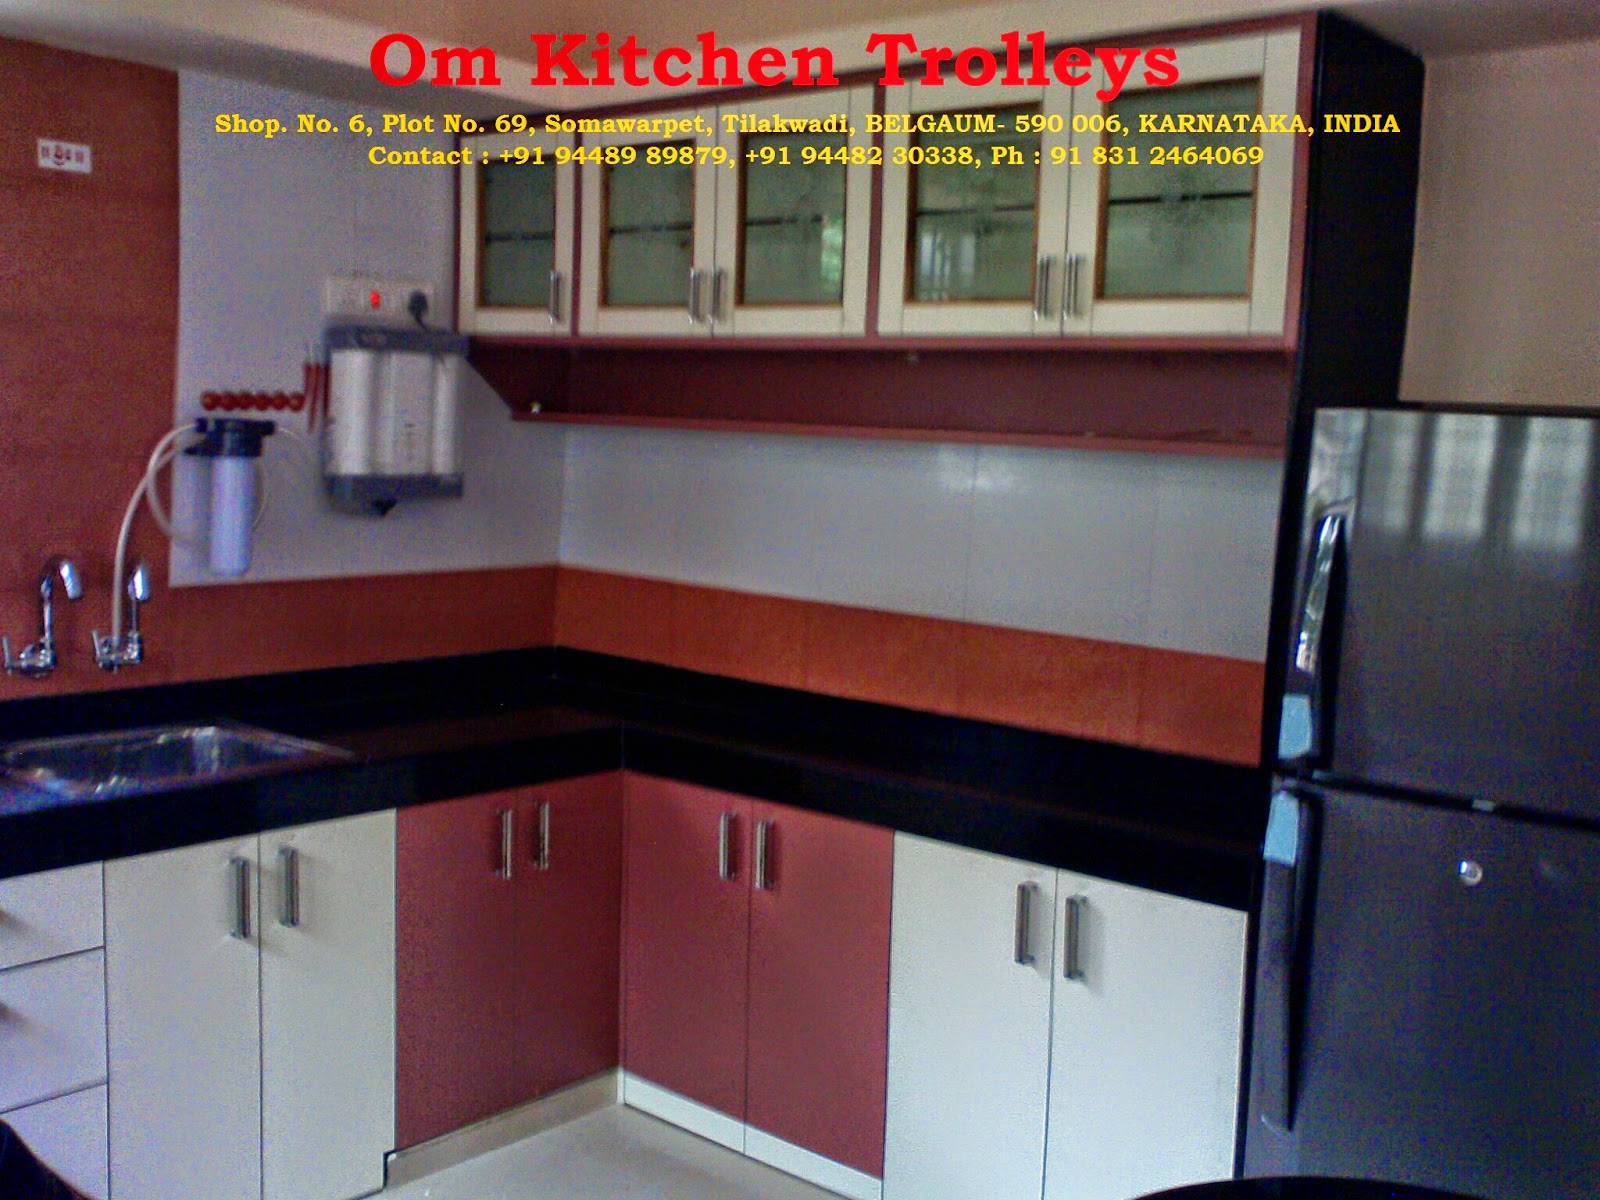 Om kitchen trolleys for Kitchen trolley designs images